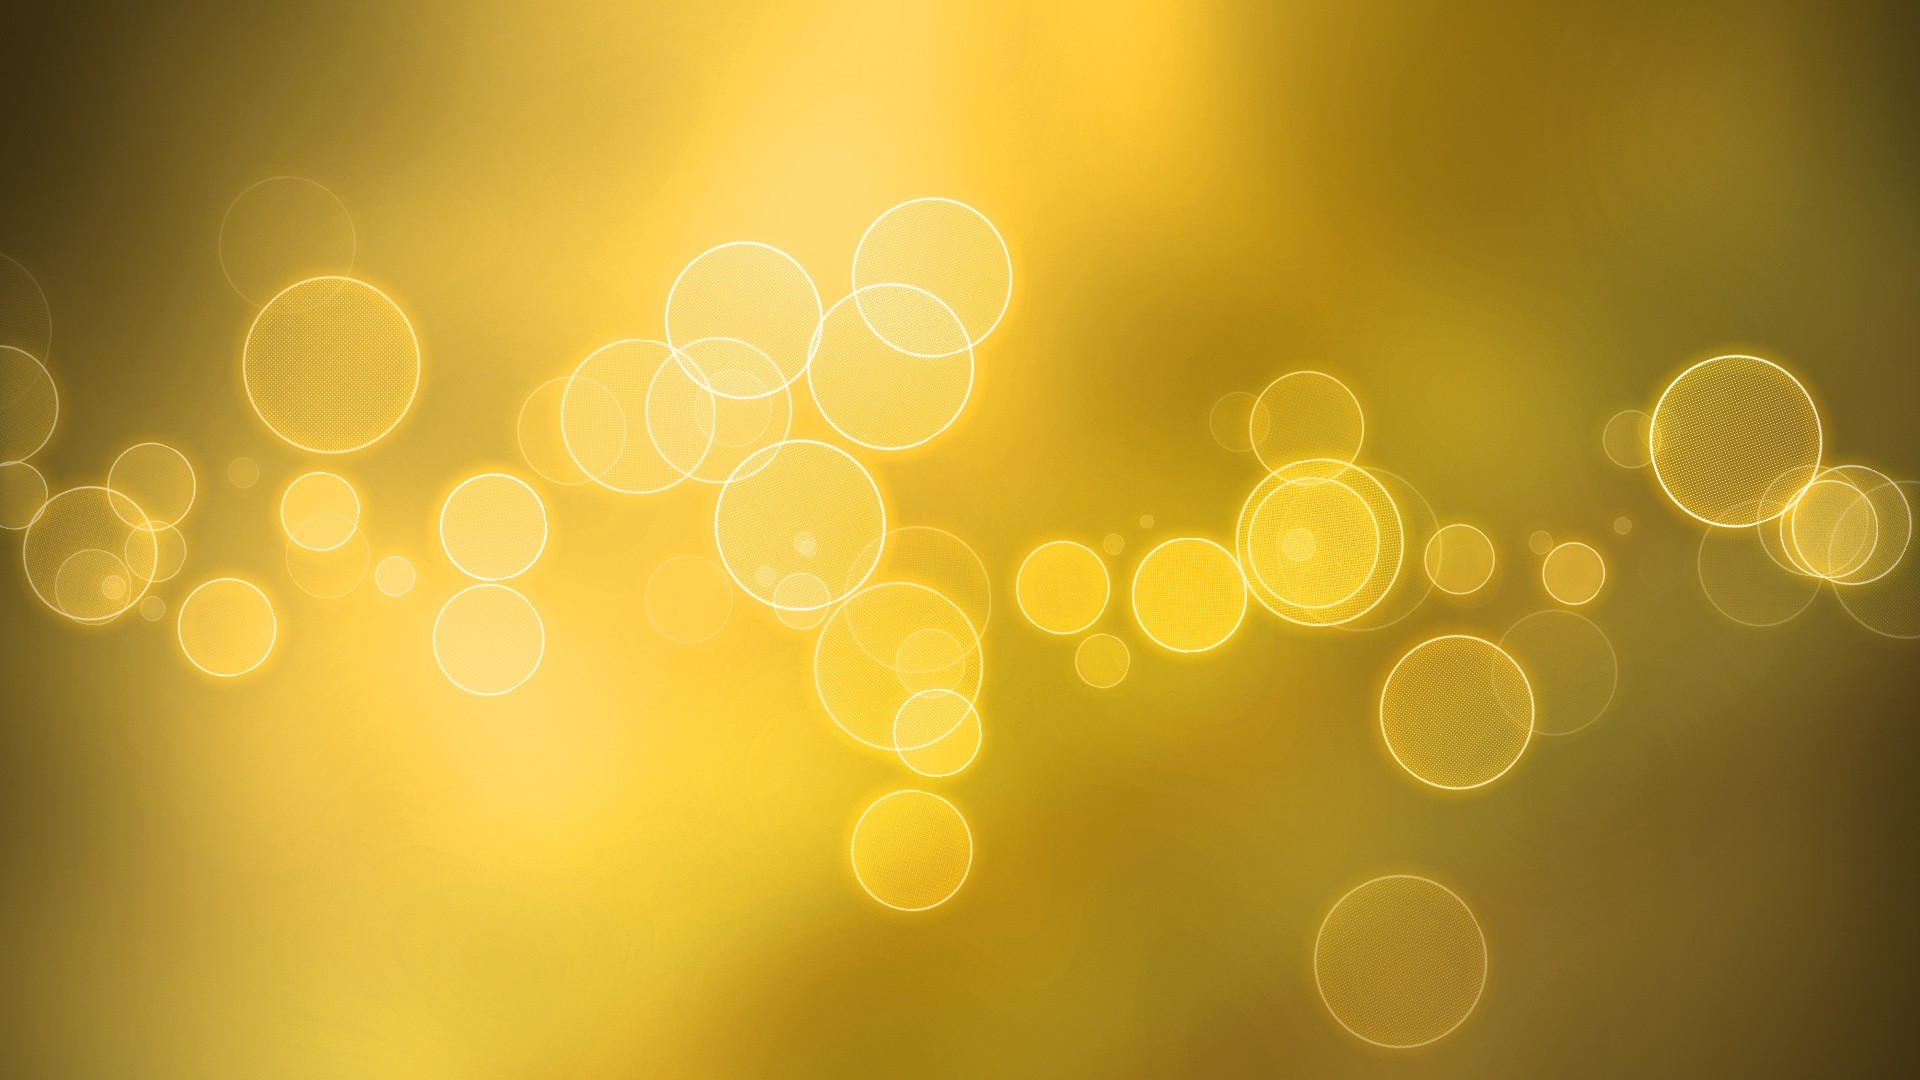 lights yellow gold bubbles HD Wallpaper